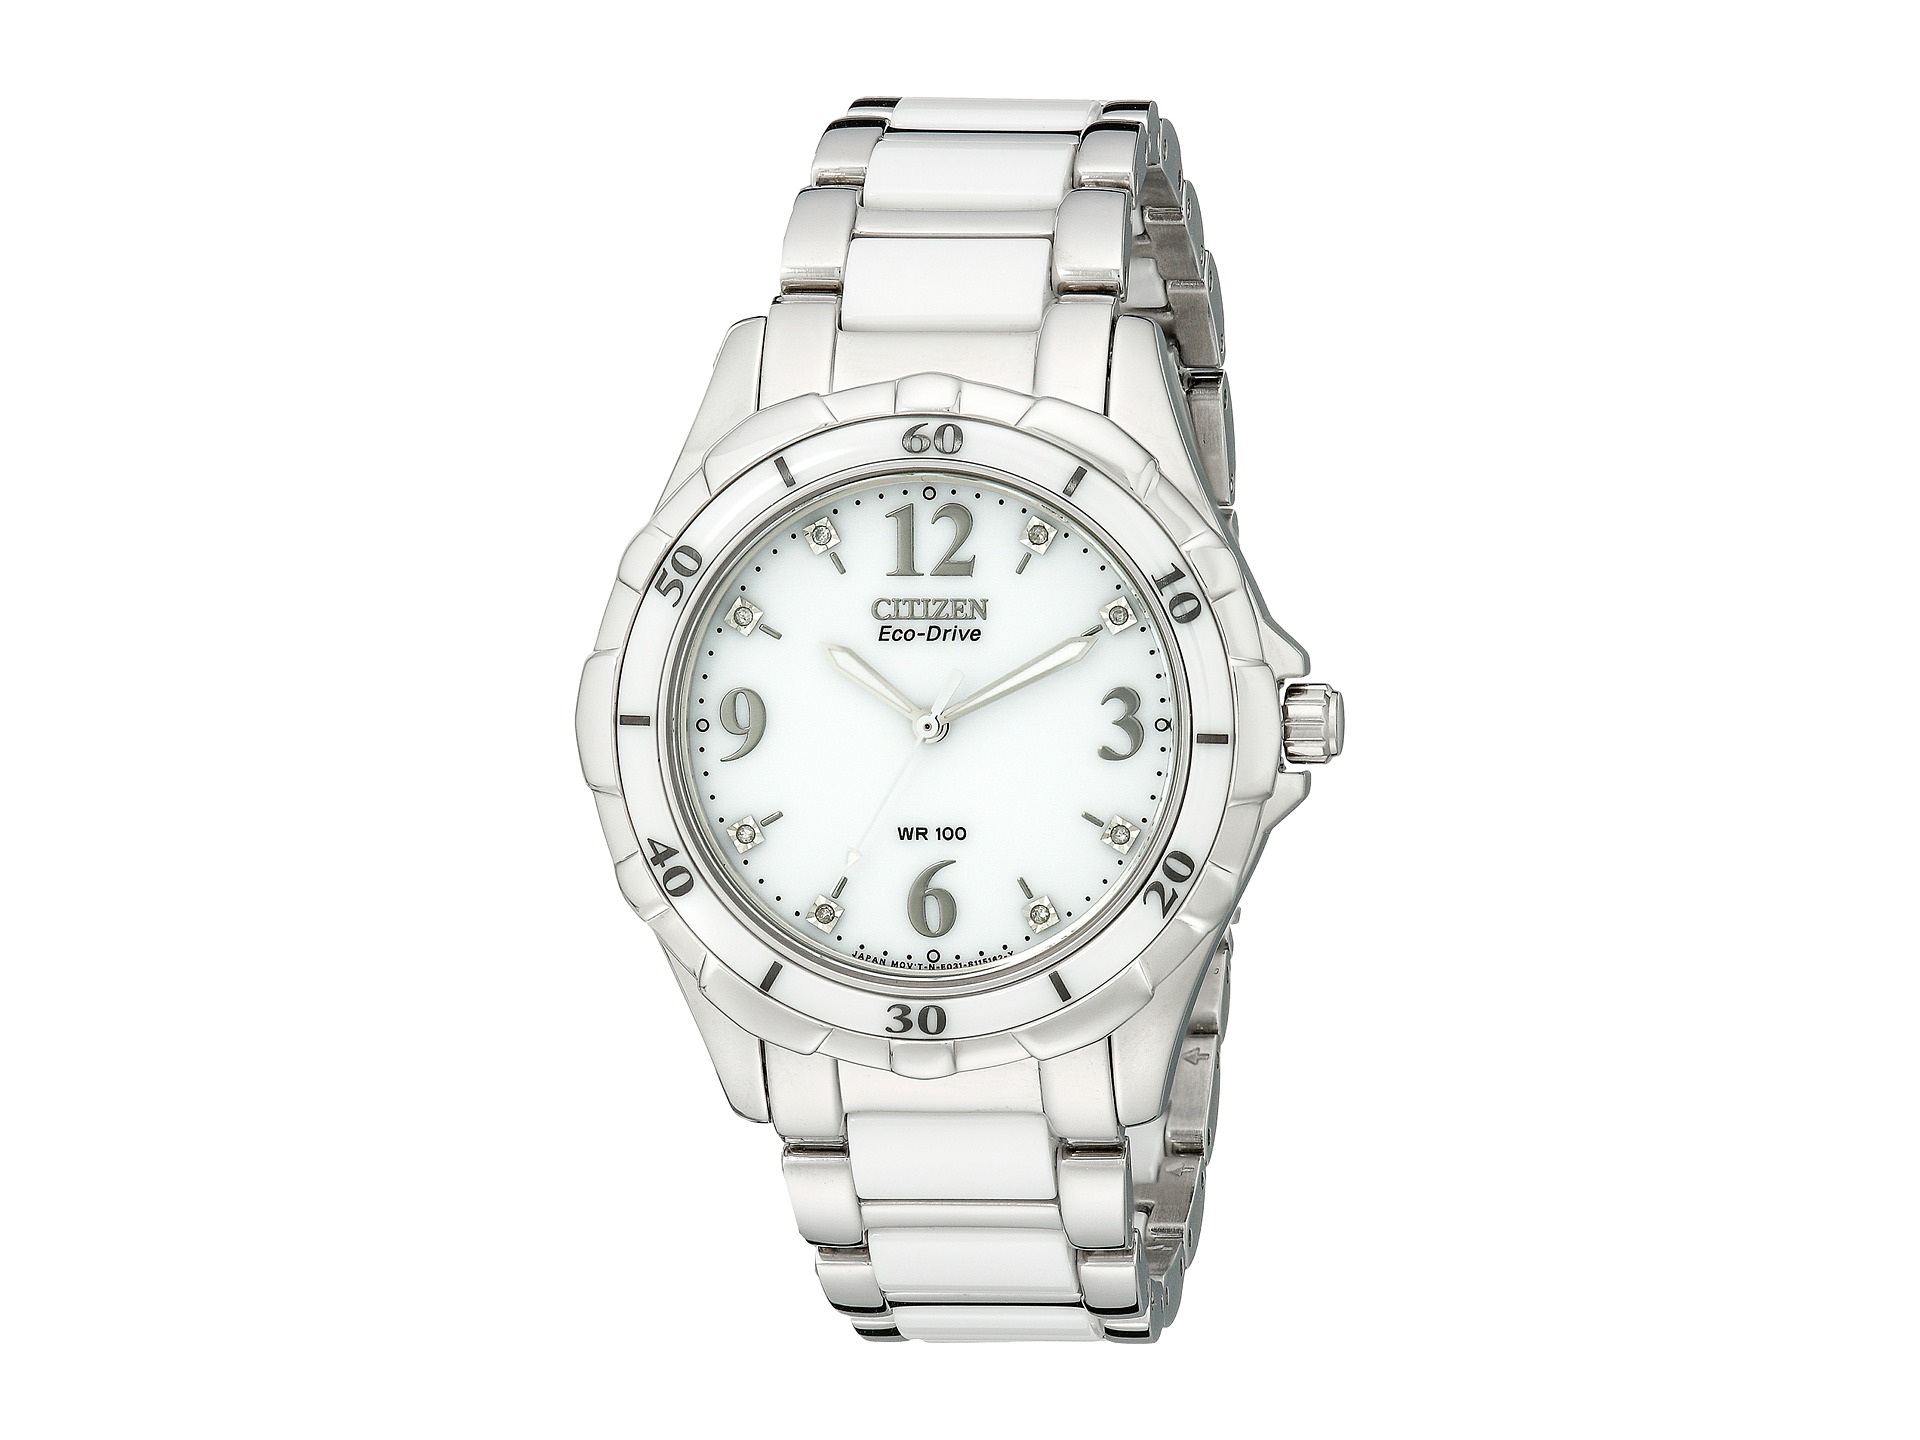 Citizen Watches Em0030 59a Ceramic Eco Drive Watch